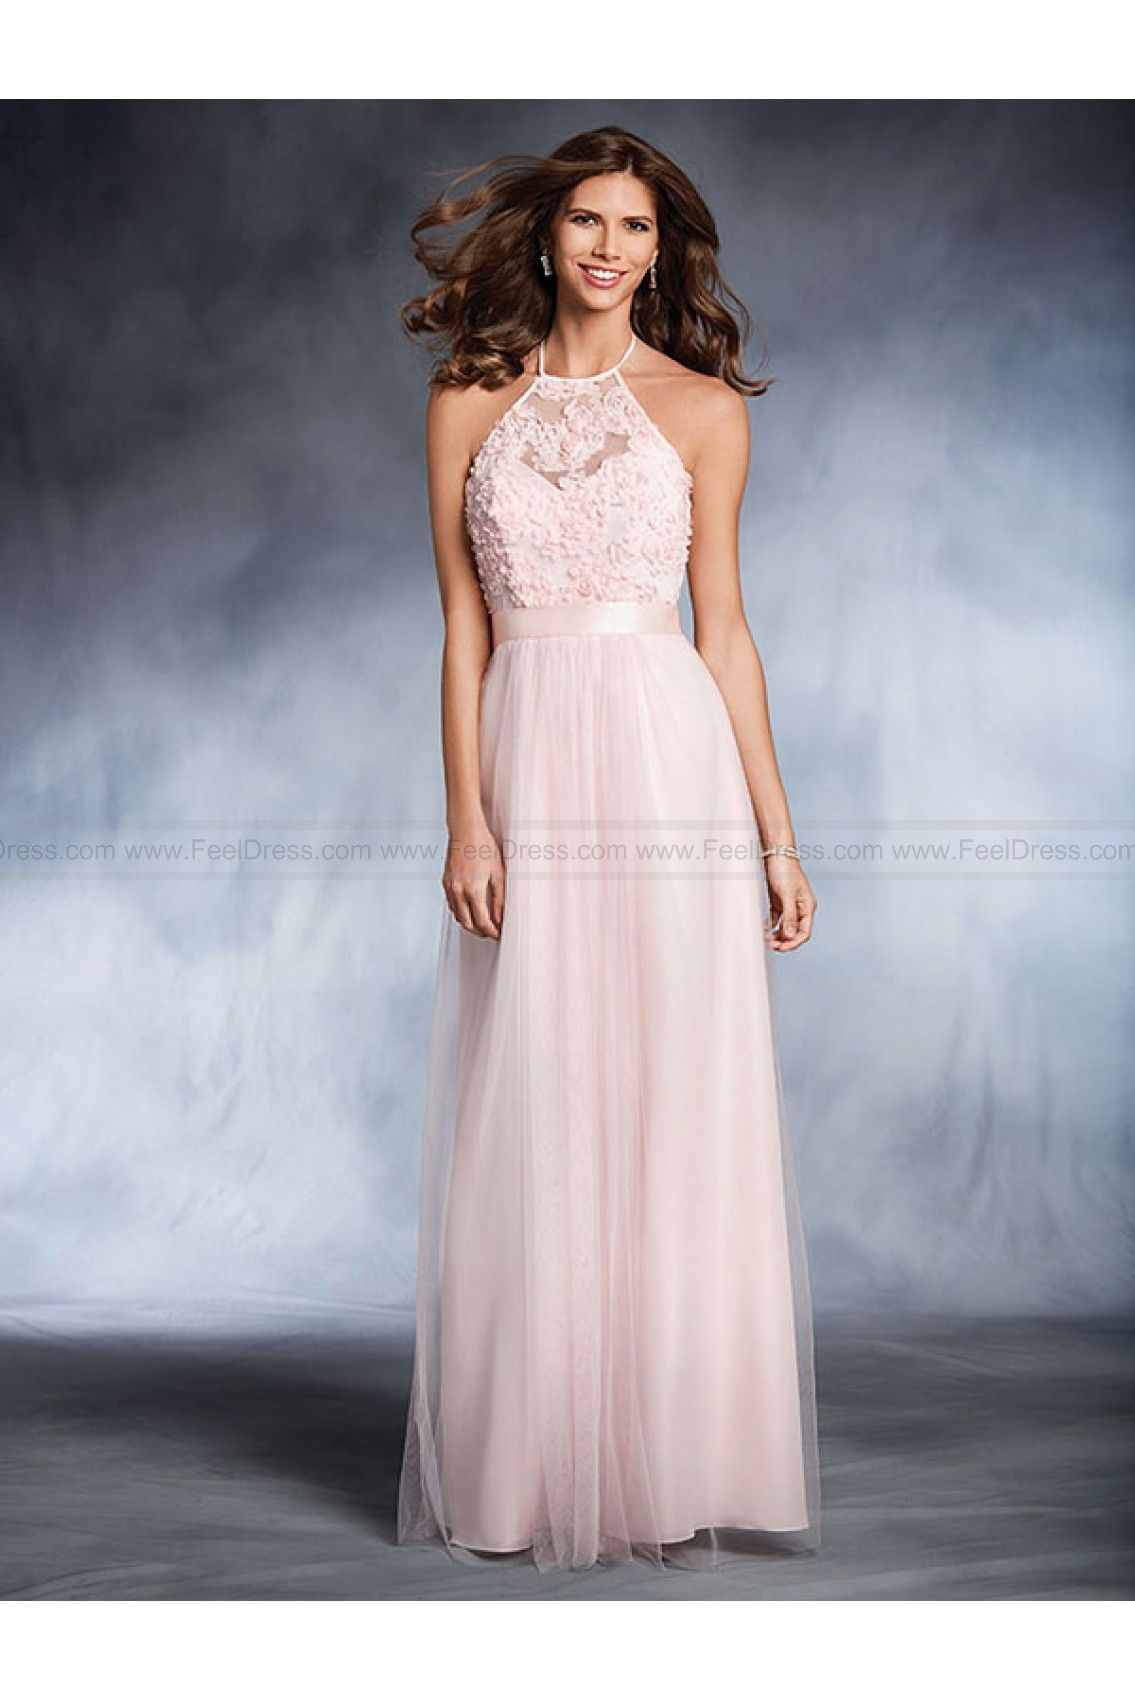 Alfred Angelo Bridesmaid Dress Style 544L New! | Alfred Angelo ...